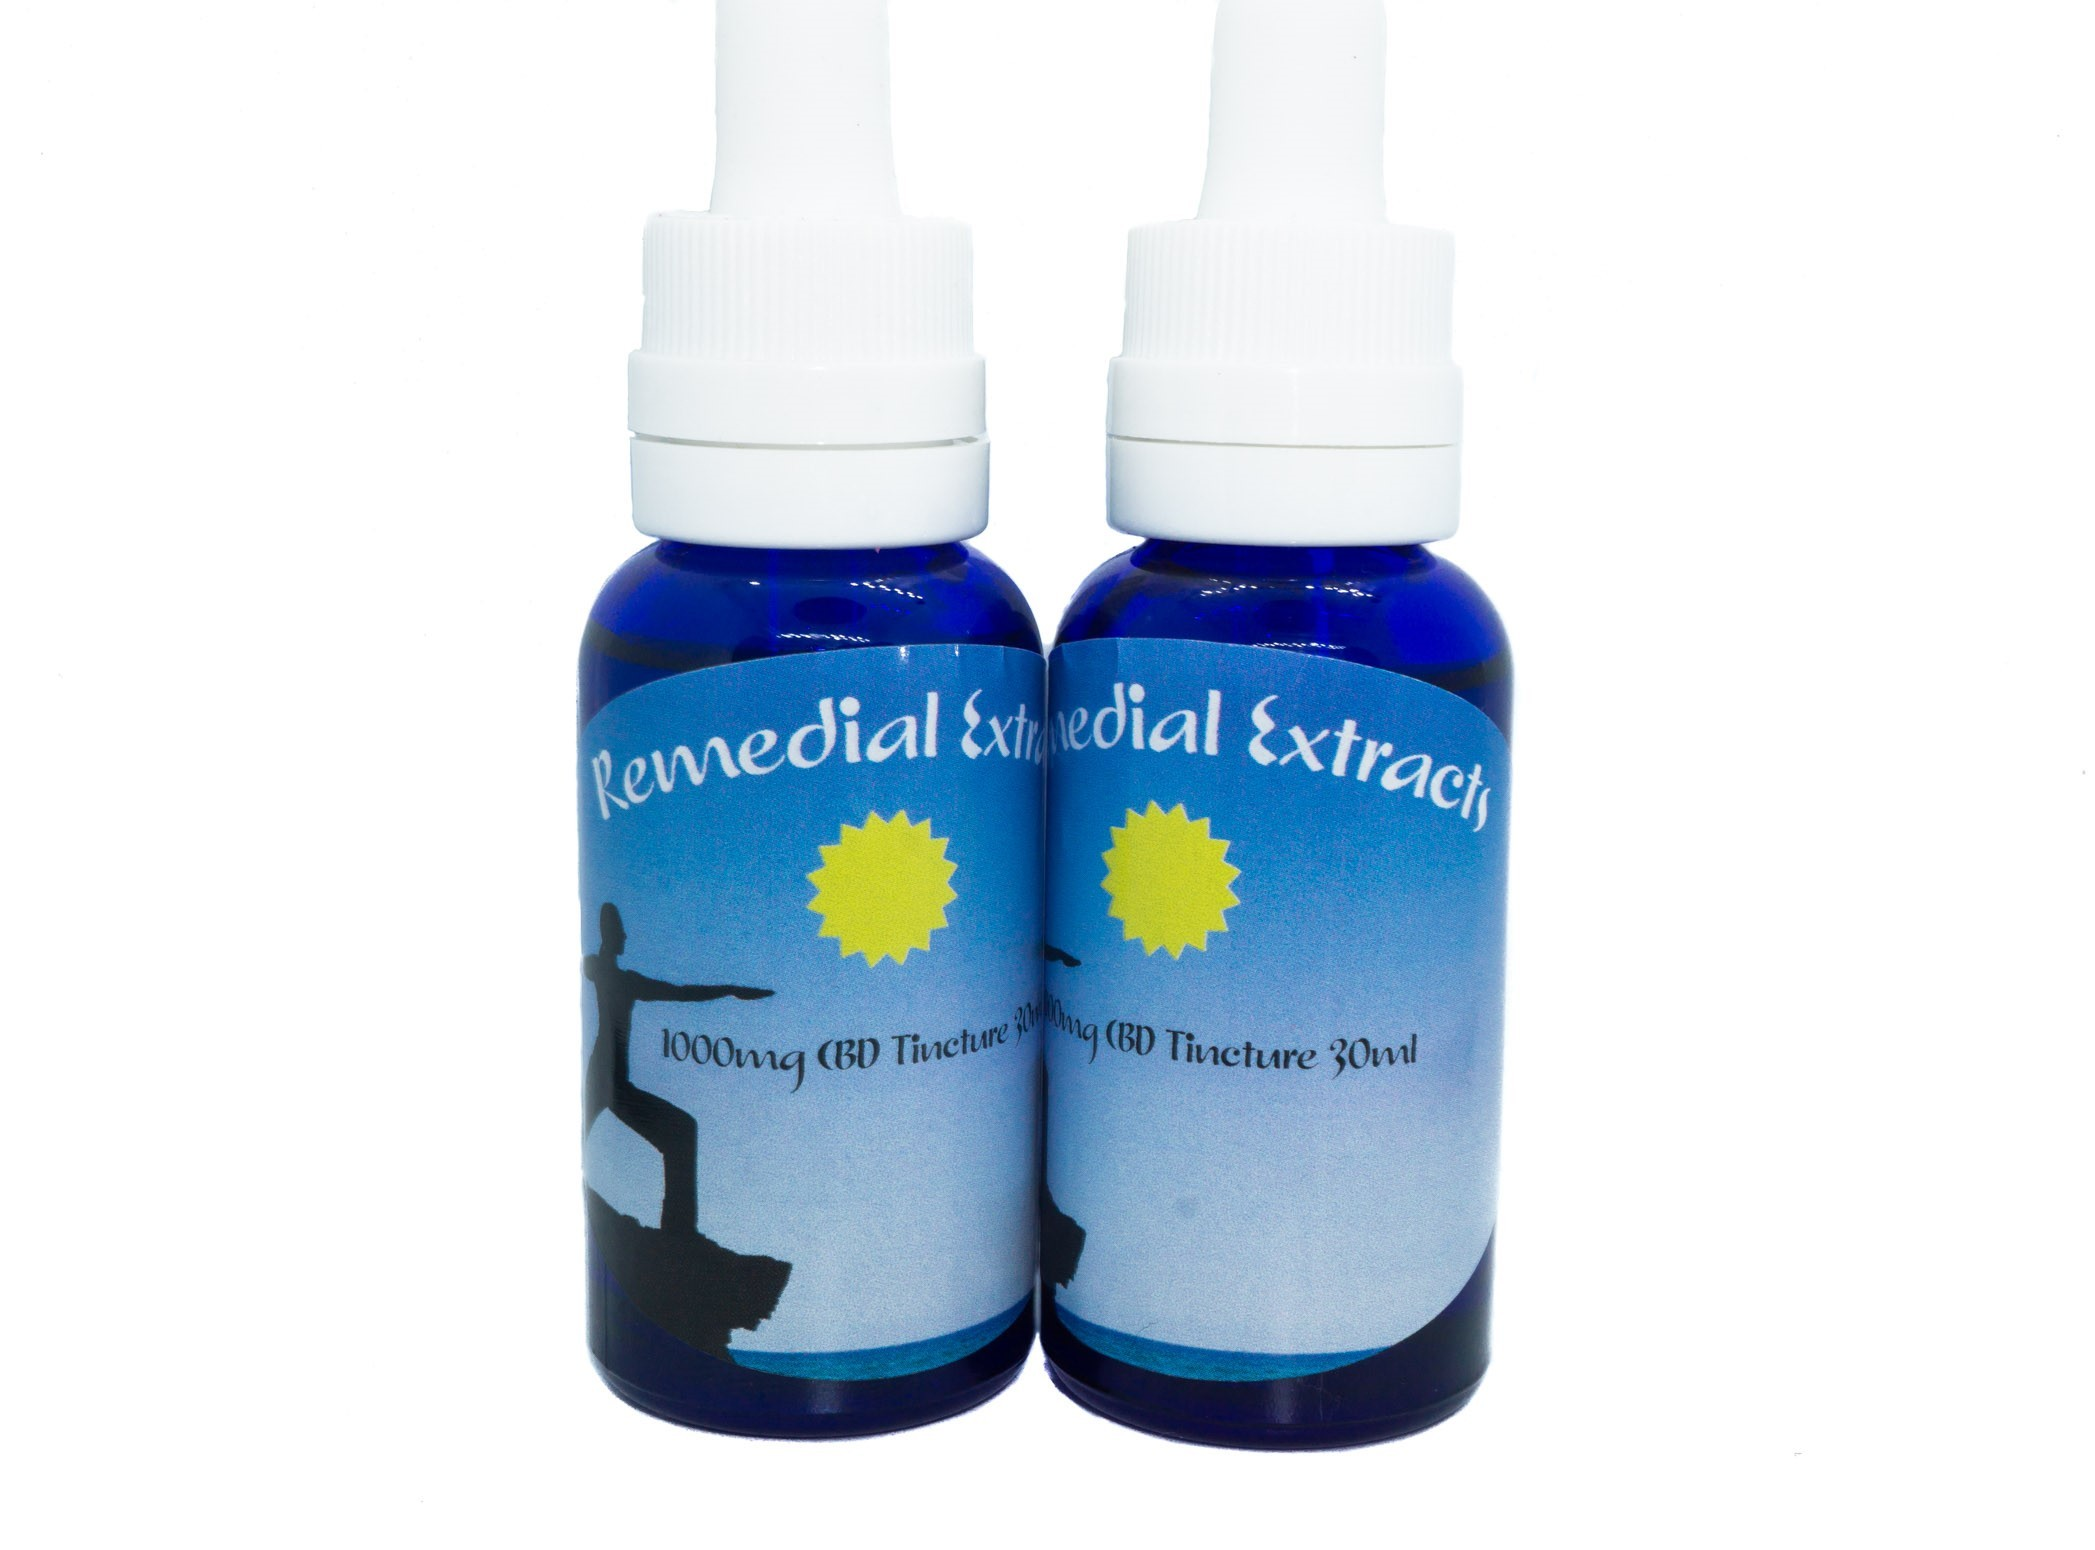 1000mg CBD Tincture By Remedial Extracts 01249